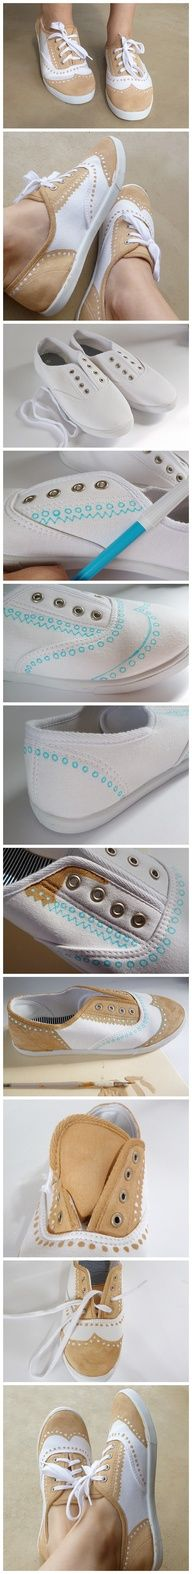 The best DIY projects & DIY ideas and tutorials: sewing, paper craft, DIY. DIY Clothing & Tutorials Make your own saddle shoes -Read Cute Crafts, Crafts To Do, Diy Crafts, Diy Clothes Refashion, Diy Clothing, Shoe Refashion, Boutique Clothing, Ideas Paso A Paso, Do It Yourself Inspiration